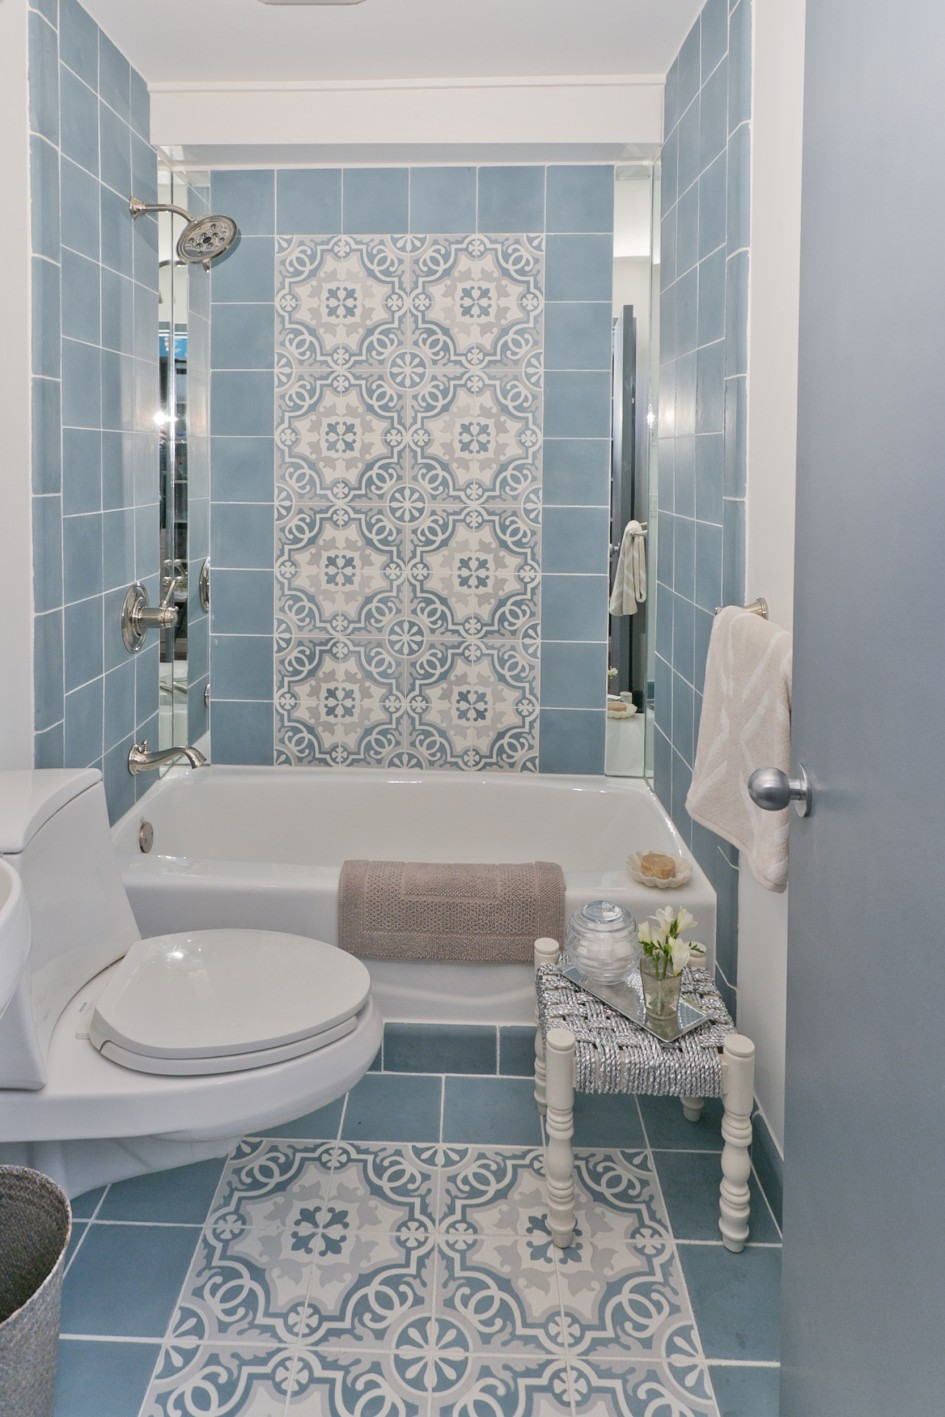 beautiful-minimalist-blue-tile-pattern-bathroom-decor-also-cute-bathtub - Copy